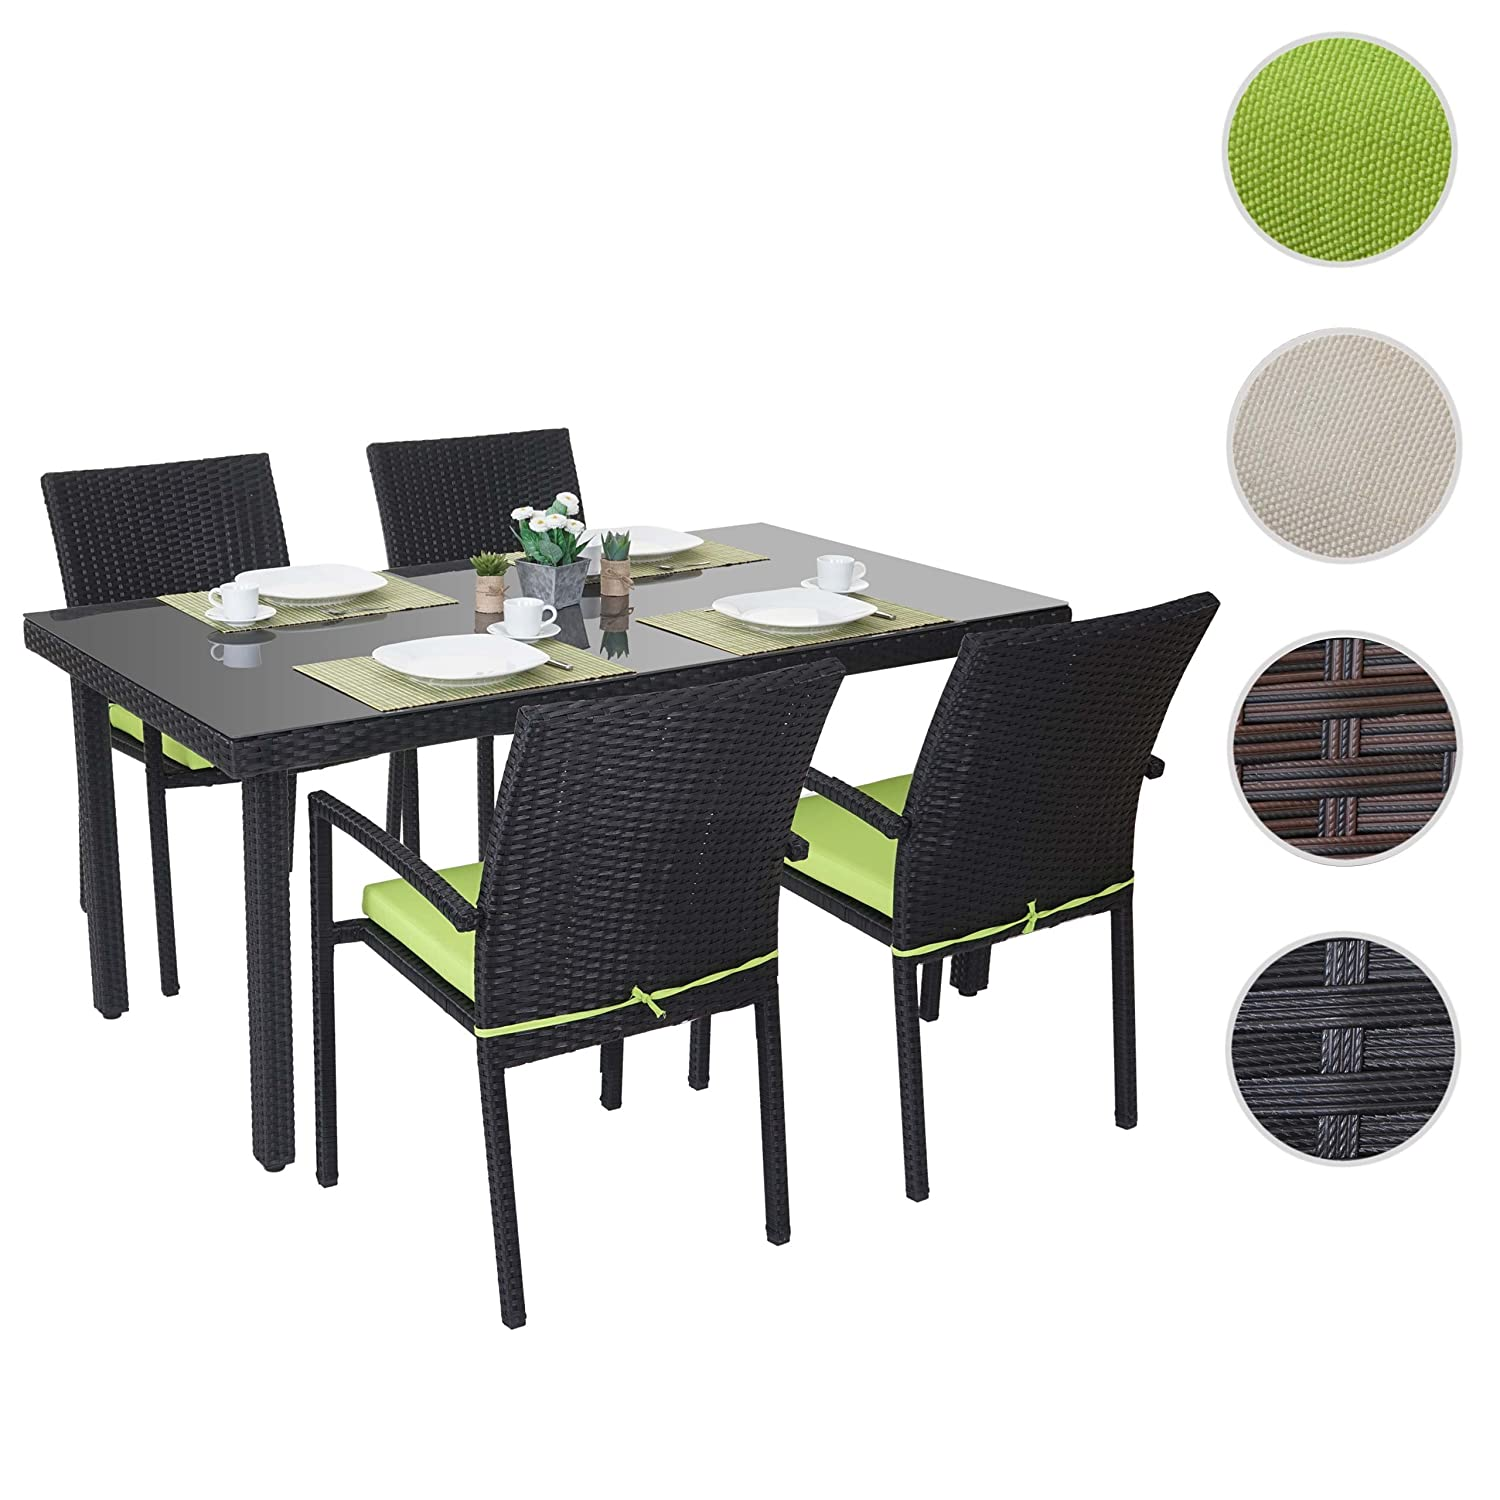 poly rattan garnitur cava garten sitzgruppe 4x stuhl tisch 160x90cm anthrazit kissen gr n. Black Bedroom Furniture Sets. Home Design Ideas